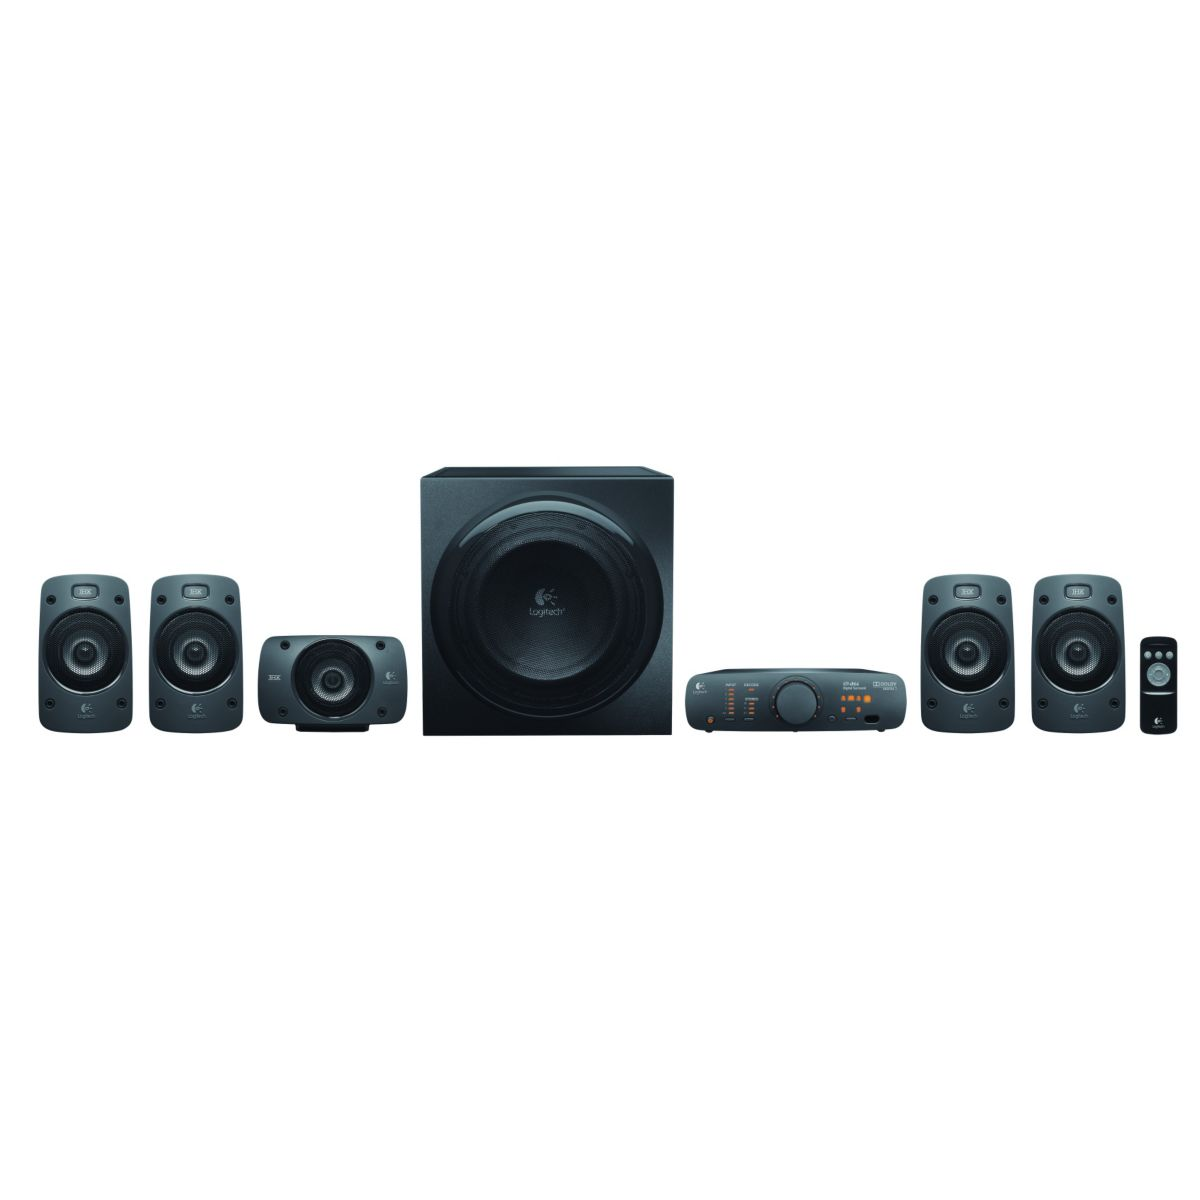 Enceinte pc logitech z906 5.1 thx surround - 2% de remise imm?...